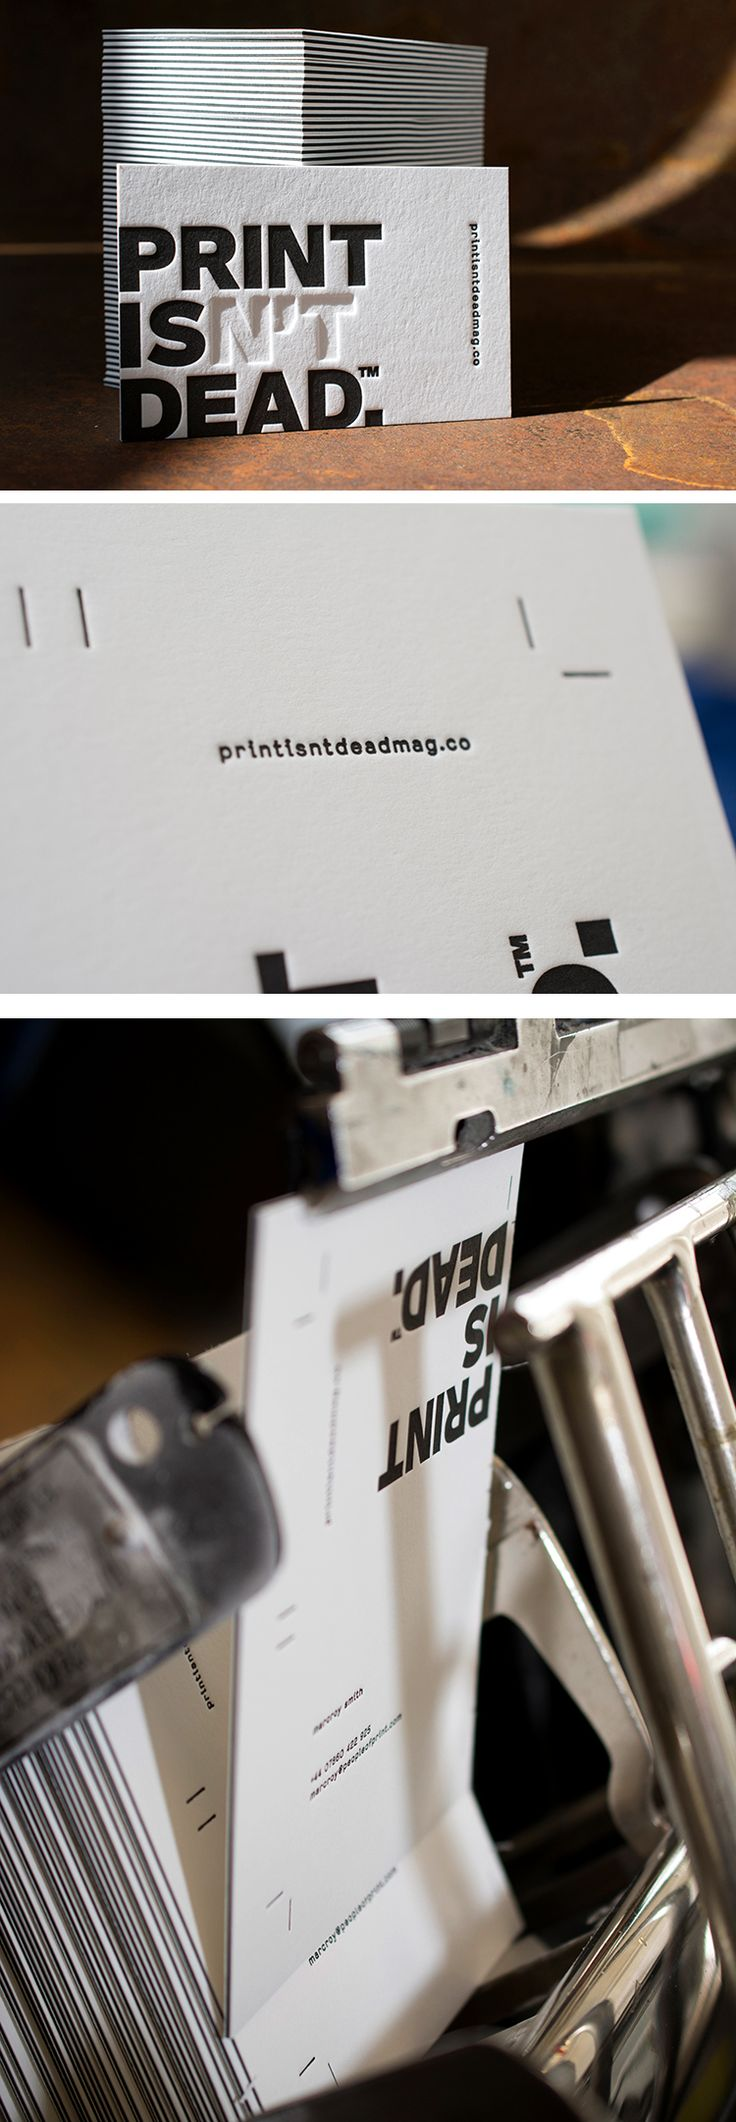 Letterpress Manufaktur Hamburg creates stylish, striking embossed prints using historic machines to provide you with unique pieces of art printed with authentic character on a range of quality papers. Whether is be business cards, wedding cards or invites that you're after, these guys can do it to the highest standard for you. We printed our latest Print Isn't Dead business cards with these guys, and when they turned up in the post we were over the moon…